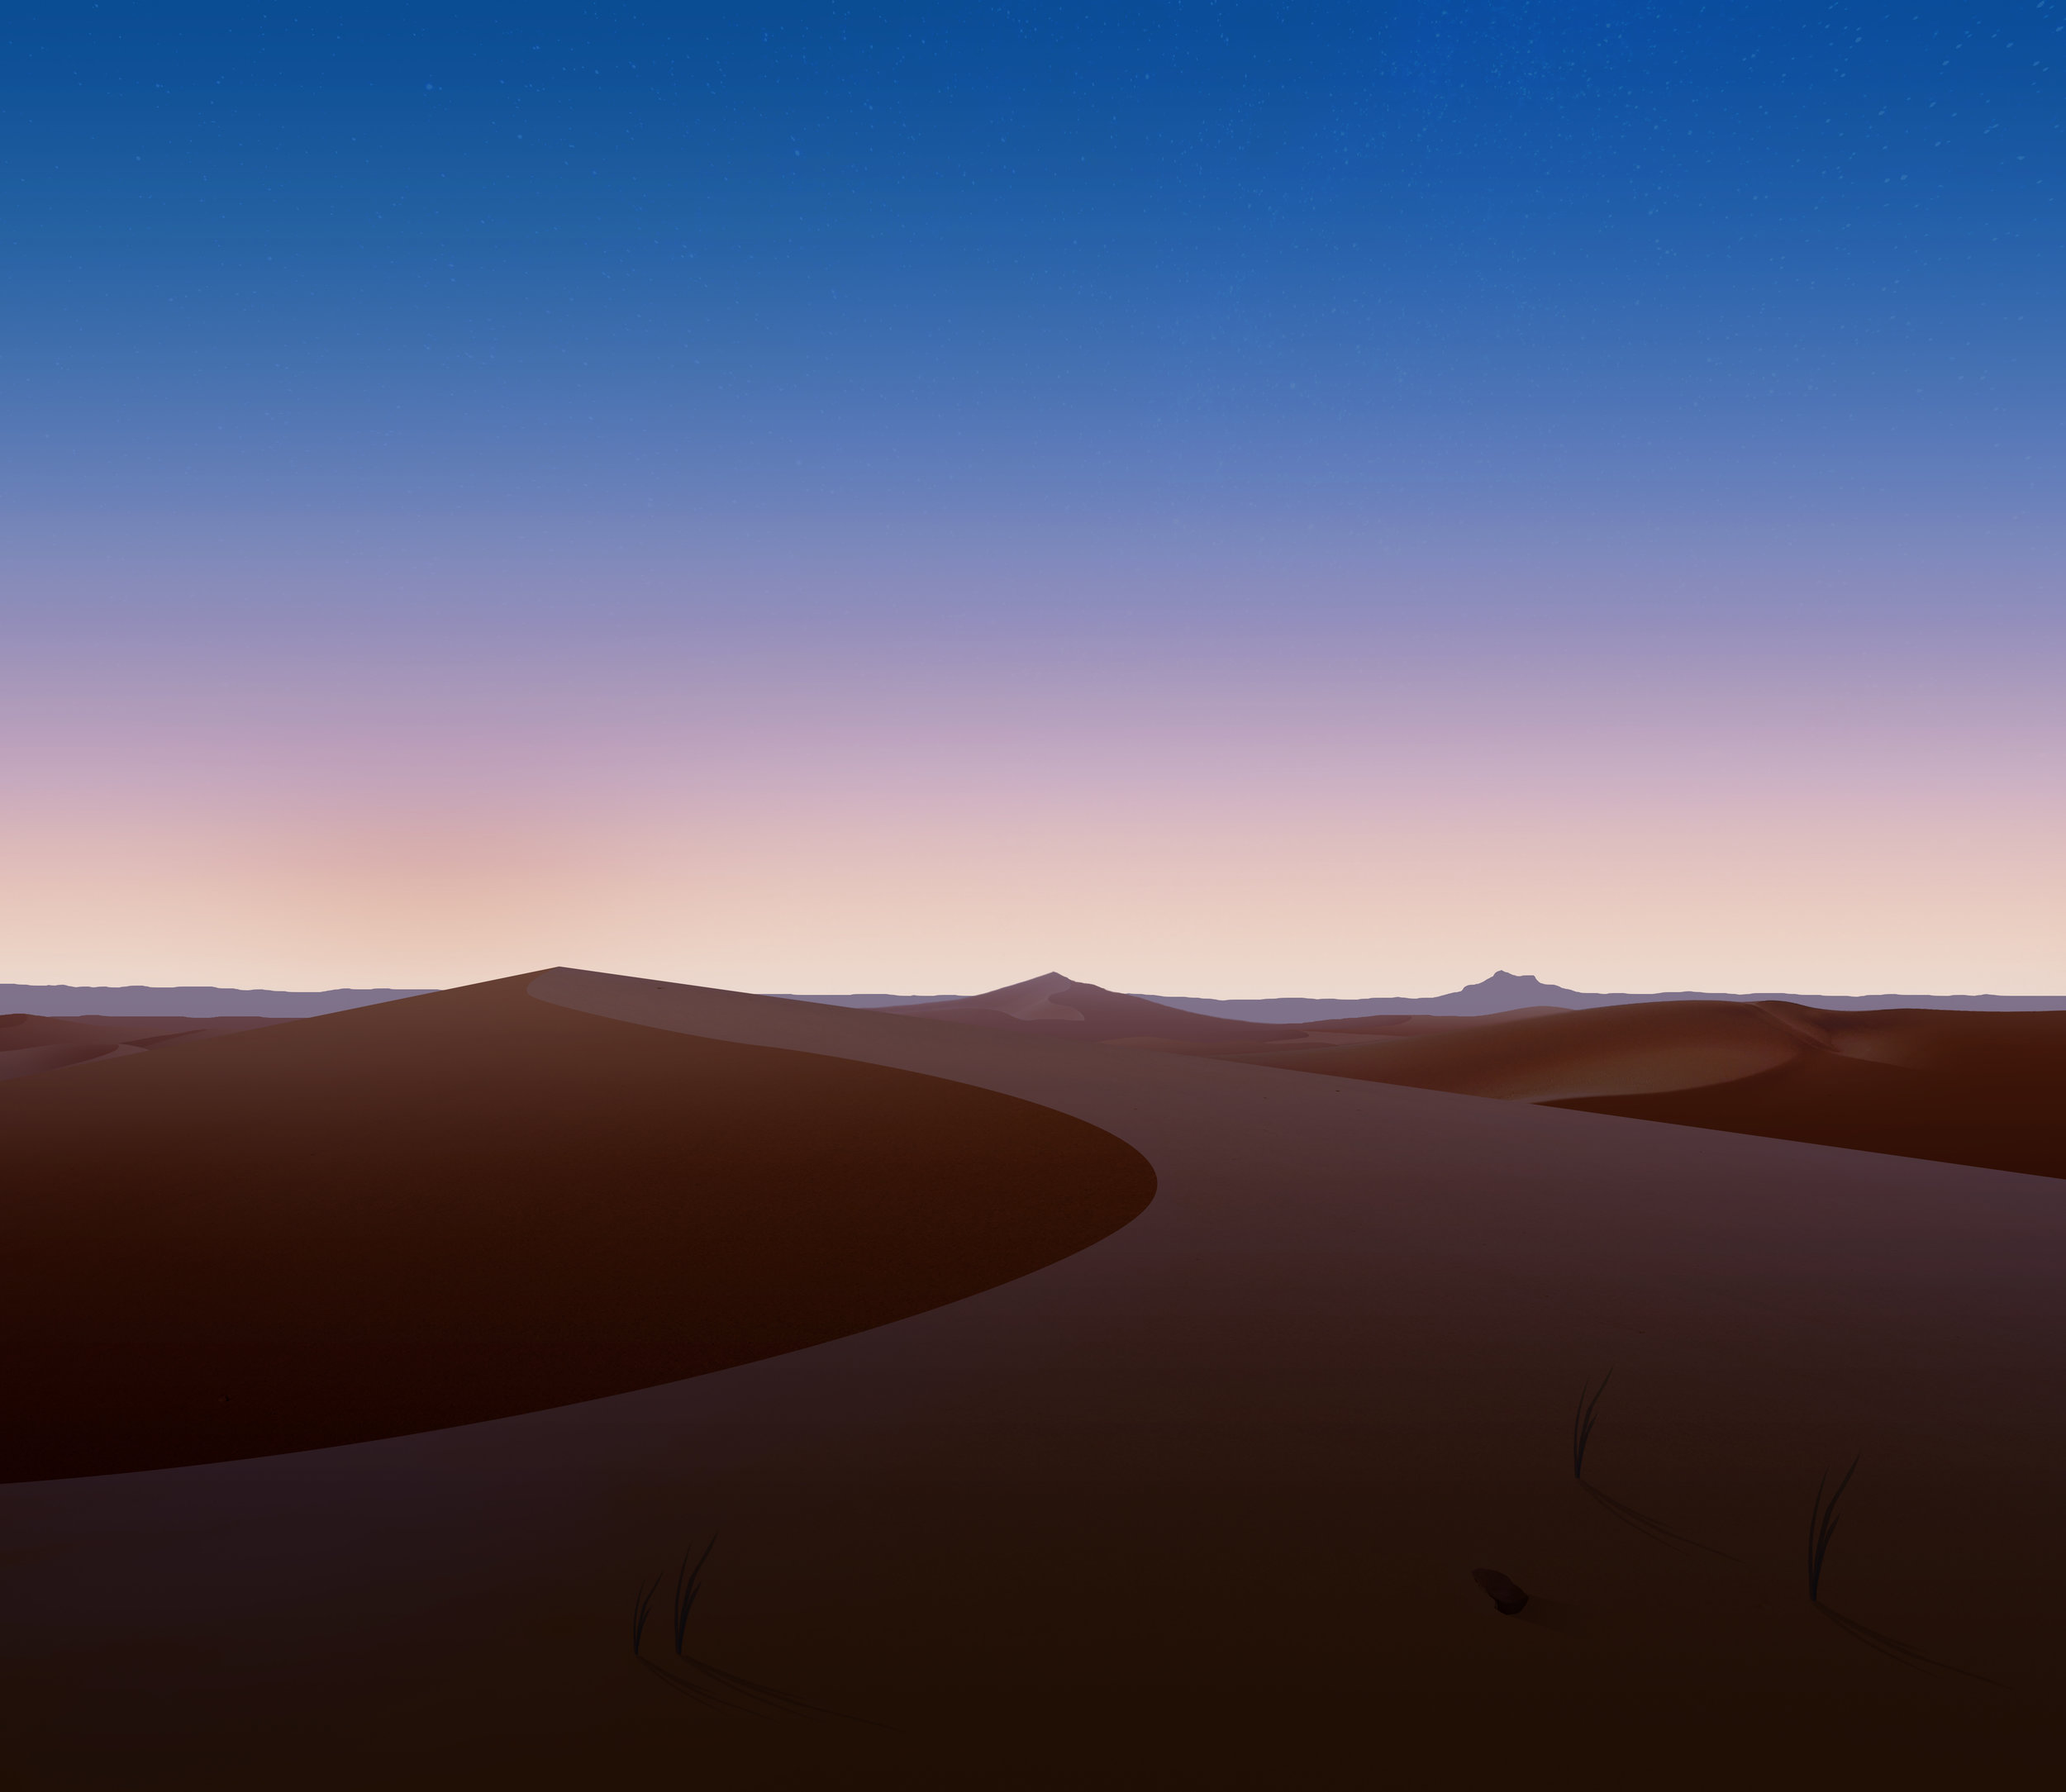 Desert_02Morning.jpg